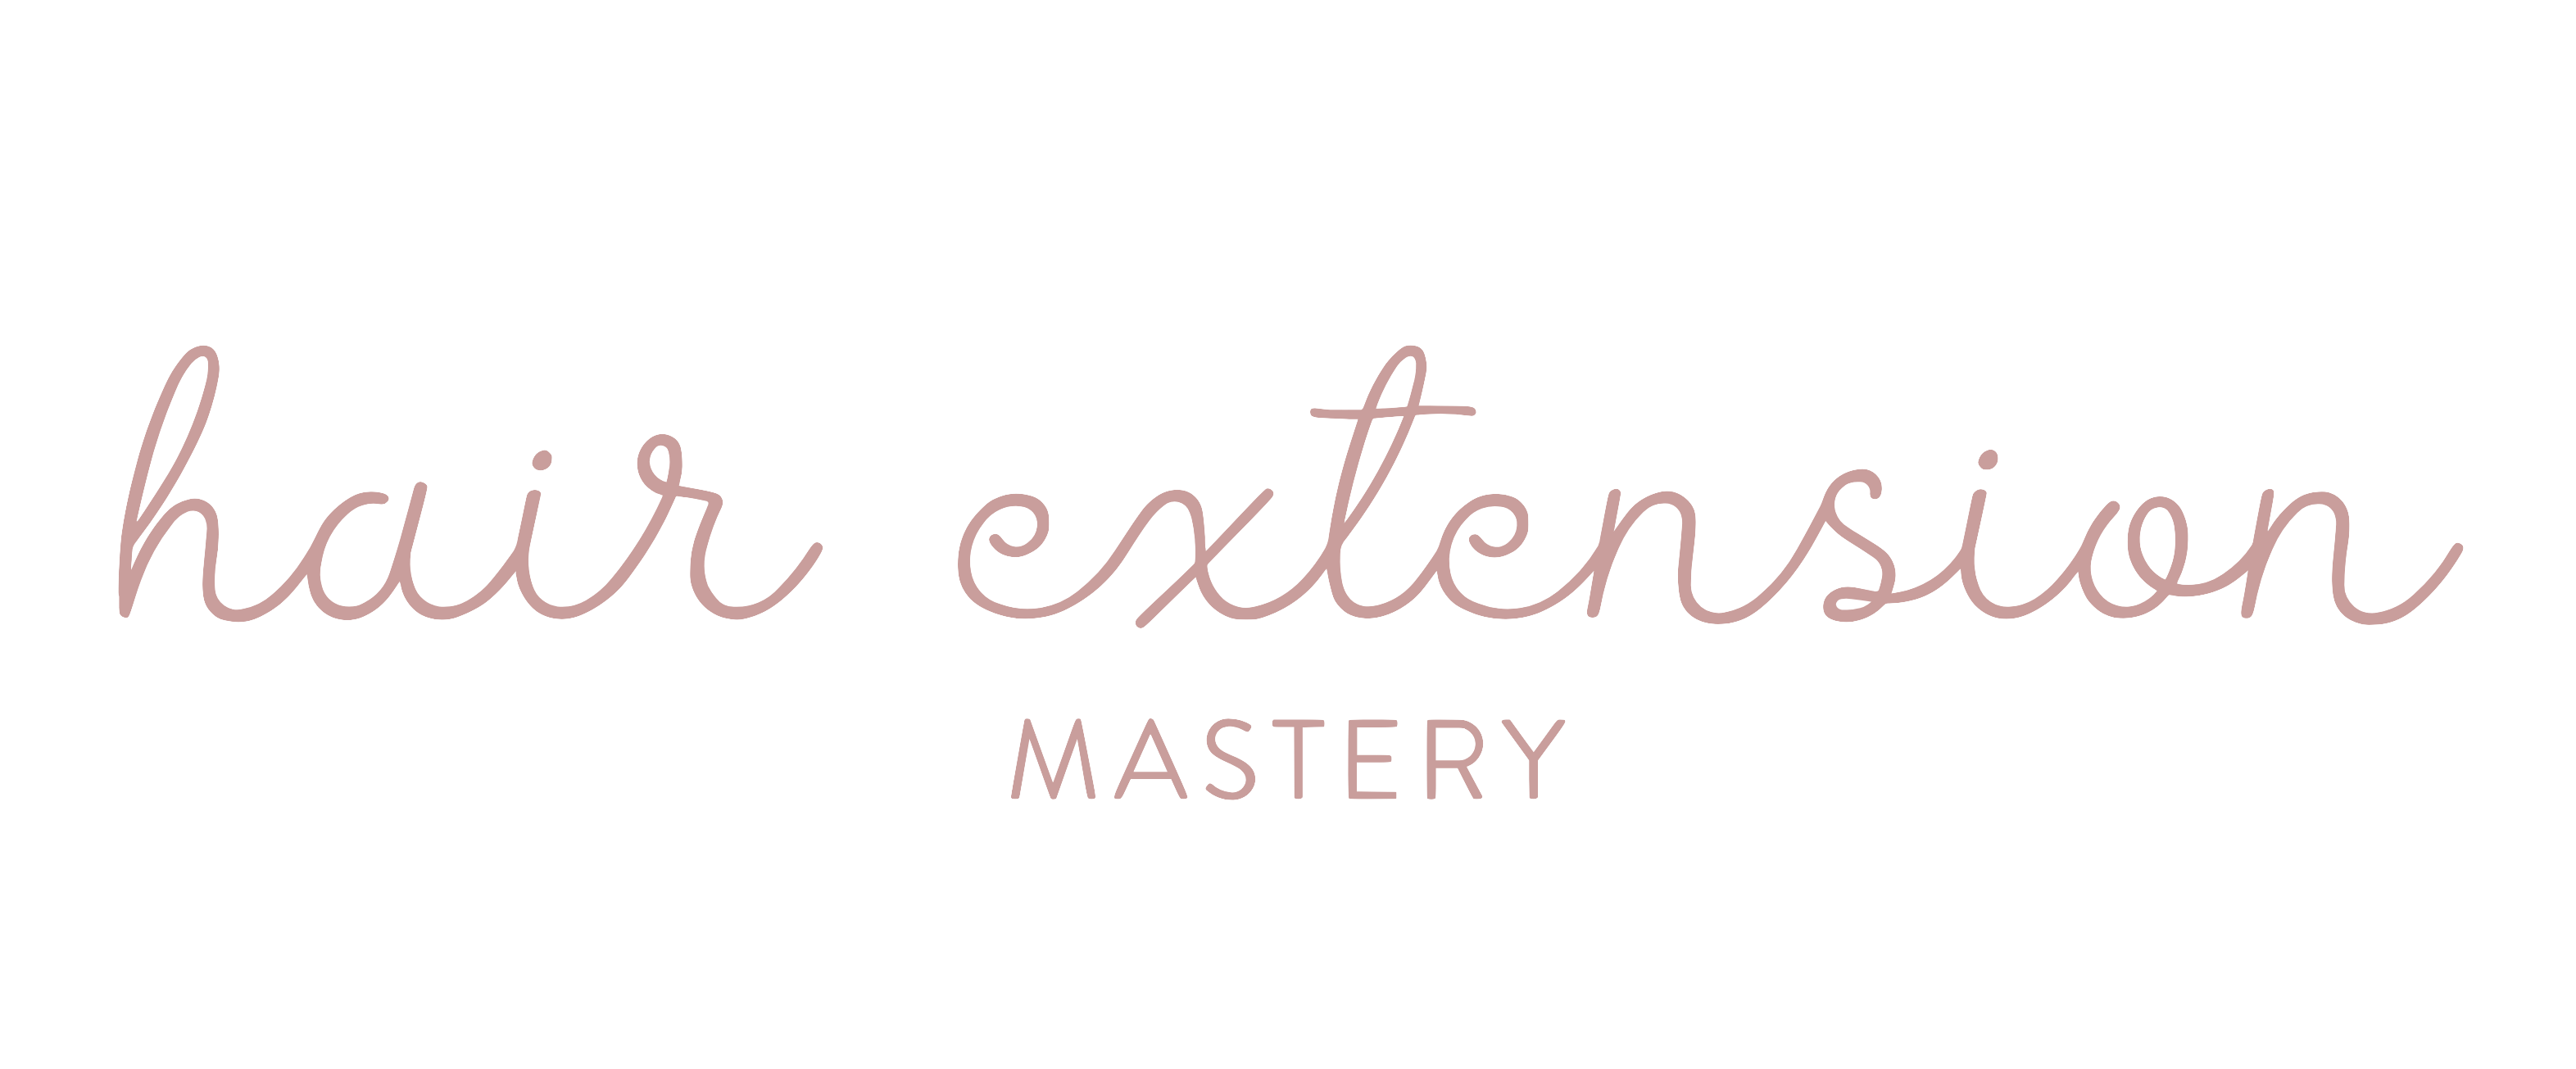 Hair Extension Mastery